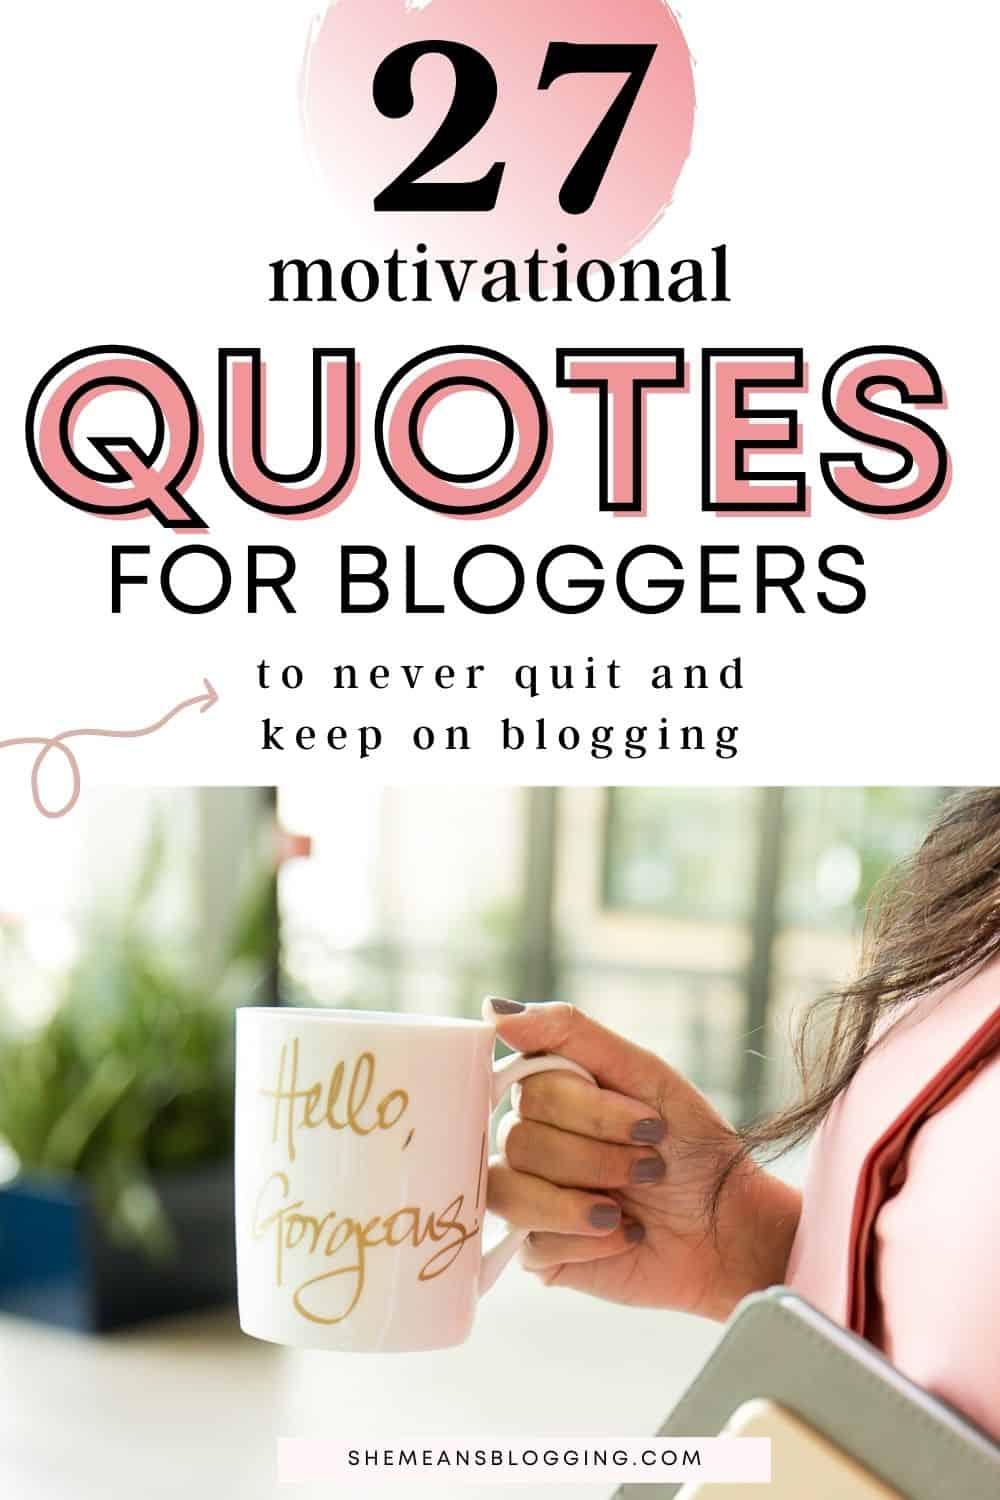 Best motivational quotes for bloggers. Feel like giving up on your blog? You must not! Click to read and save inspiring quotes for bloggers and entrepreneurs. Use these motivational quotes to get inspired daily. Inspiring quotes to make you feel better. Quotes to be consistent on blogging.